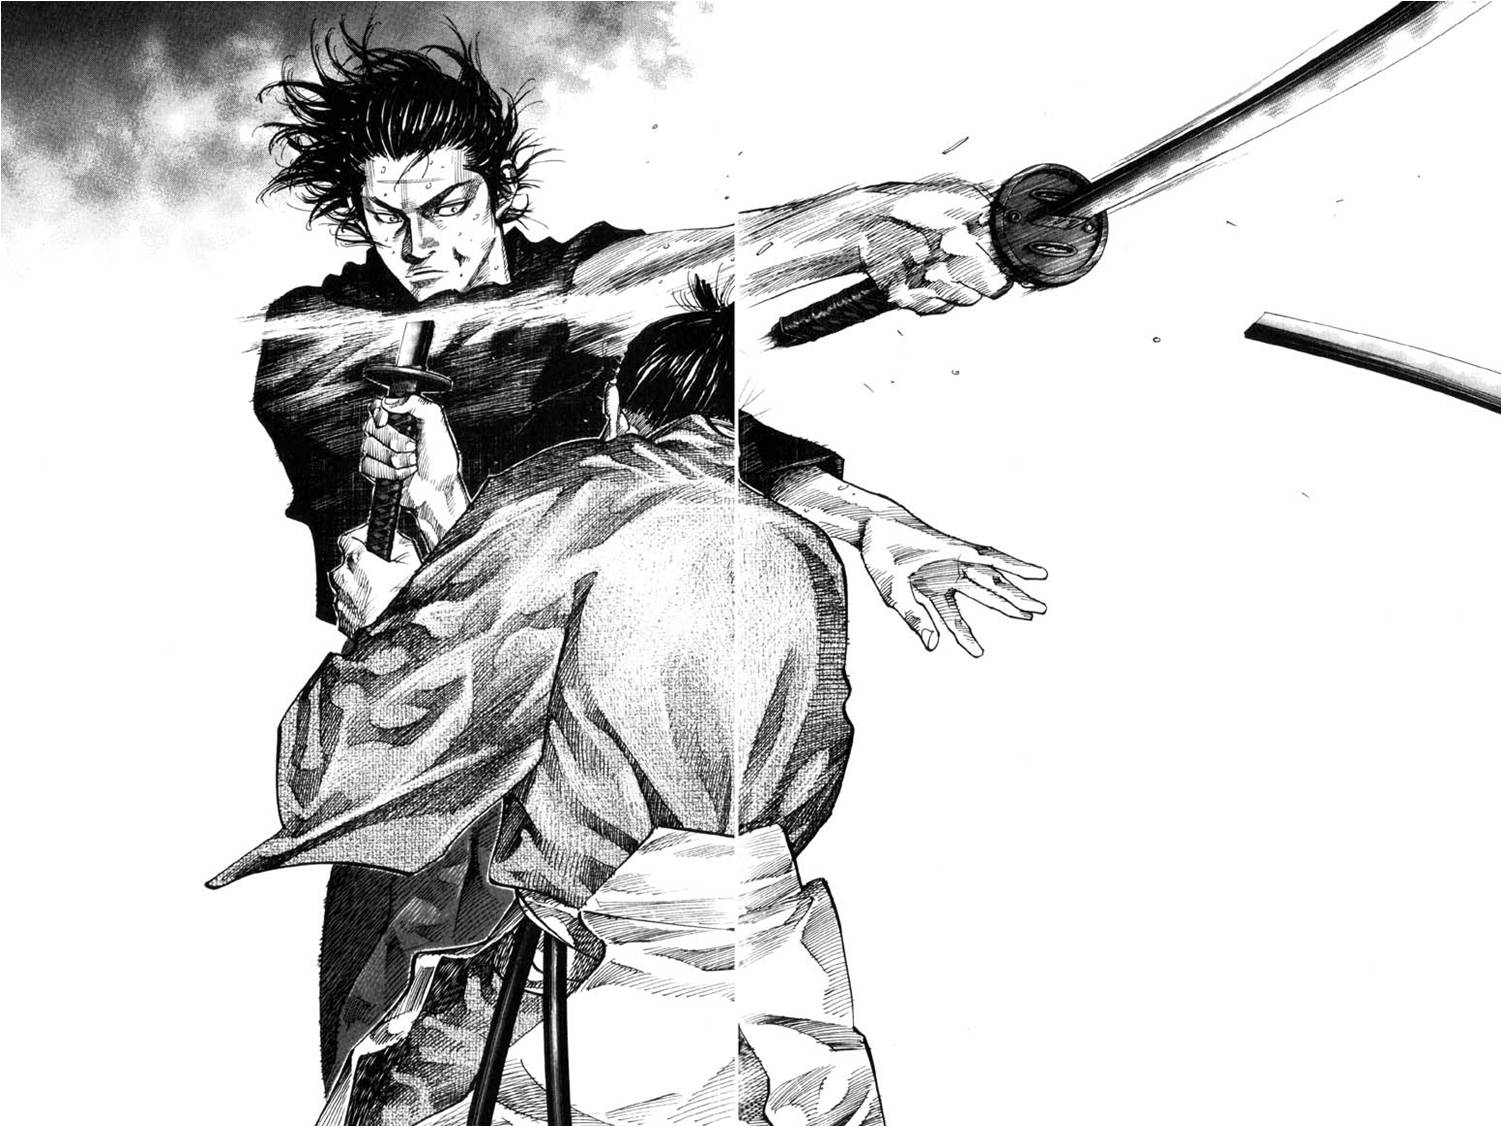 http://ghostlightning.files.wordpress.com/2009/06/vagabond-musashi-vs-4-disciples-of-yagyu-2.jpg